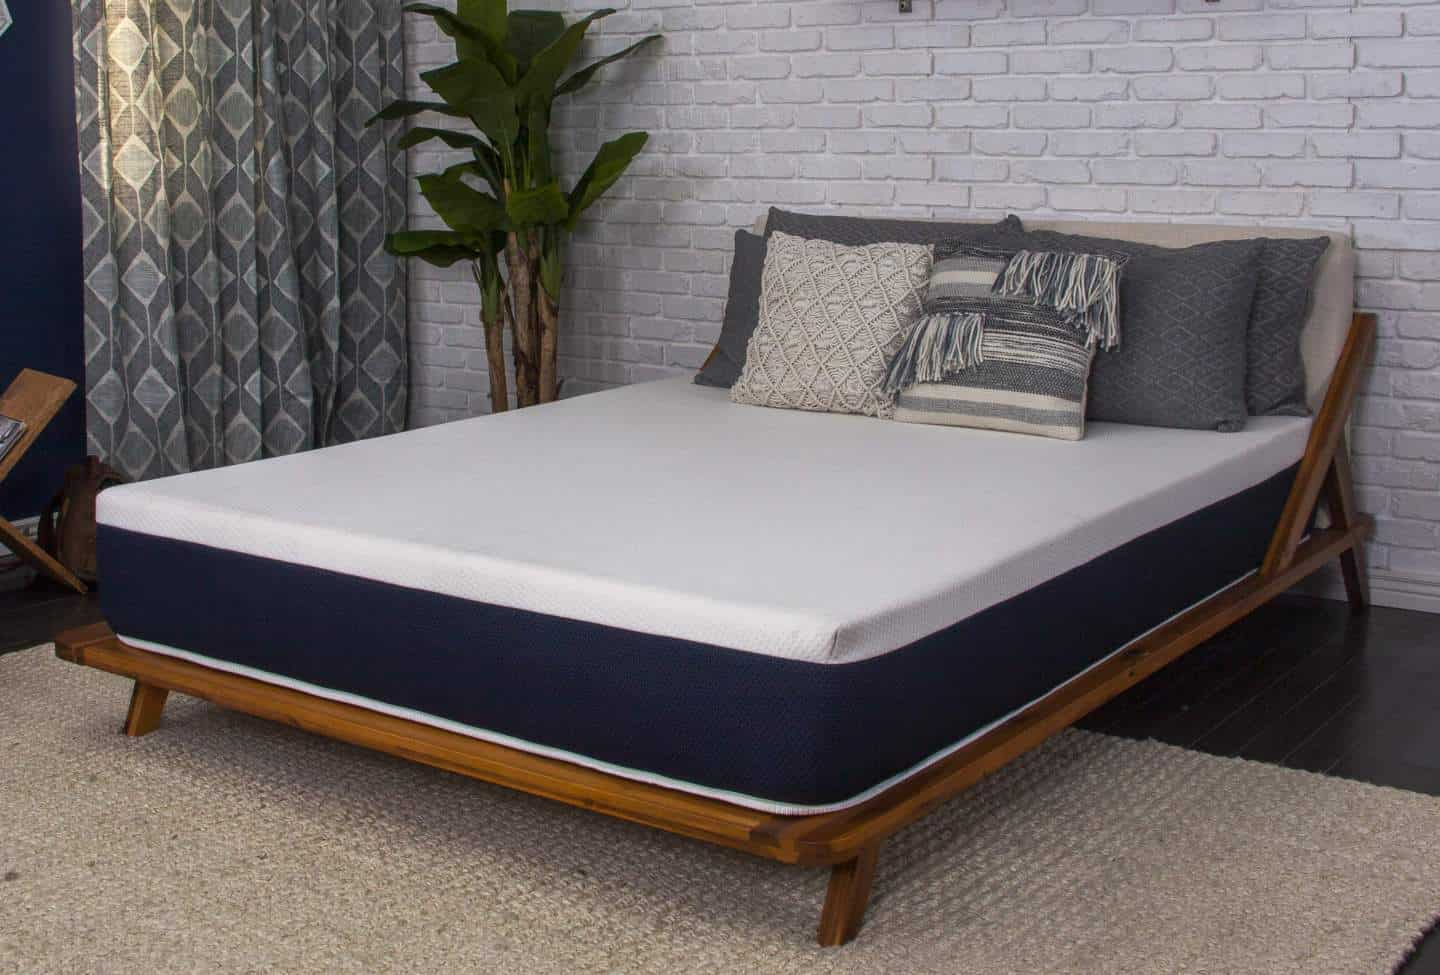 Brooklyn Bedding S Budget Mattress The Bowery